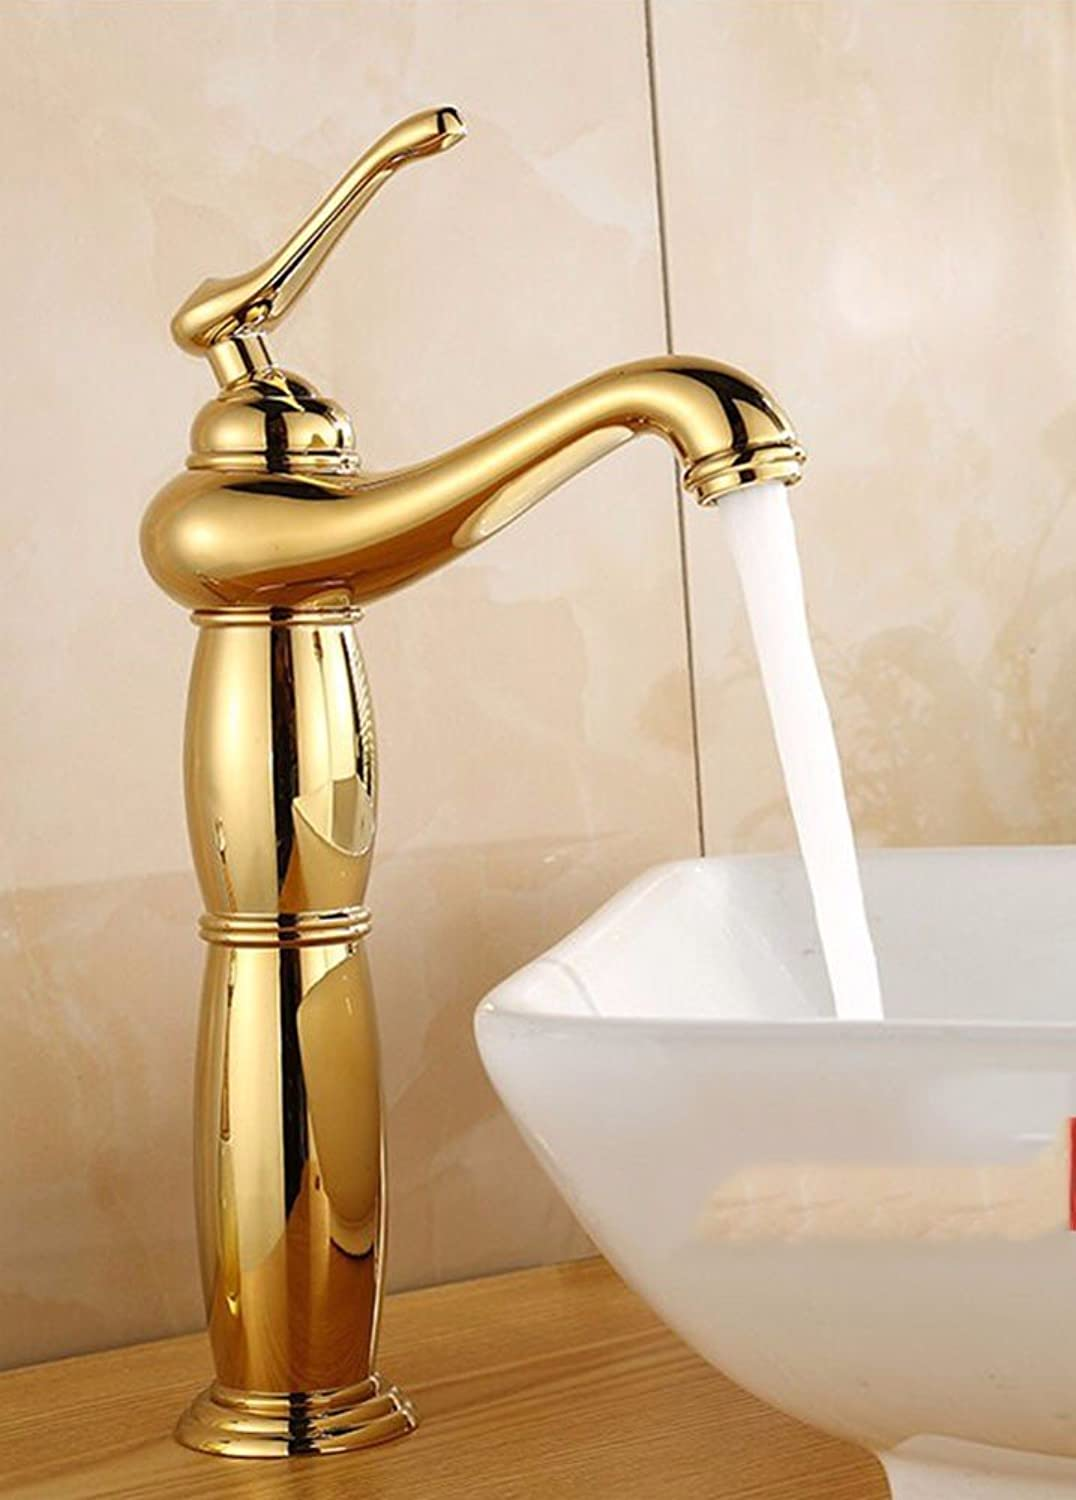 Hlluya Professional Sink Mixer Tap Kitchen Faucet Copper, washing your face, hot and cold, bathroom, Single Hole Sink mixer 8